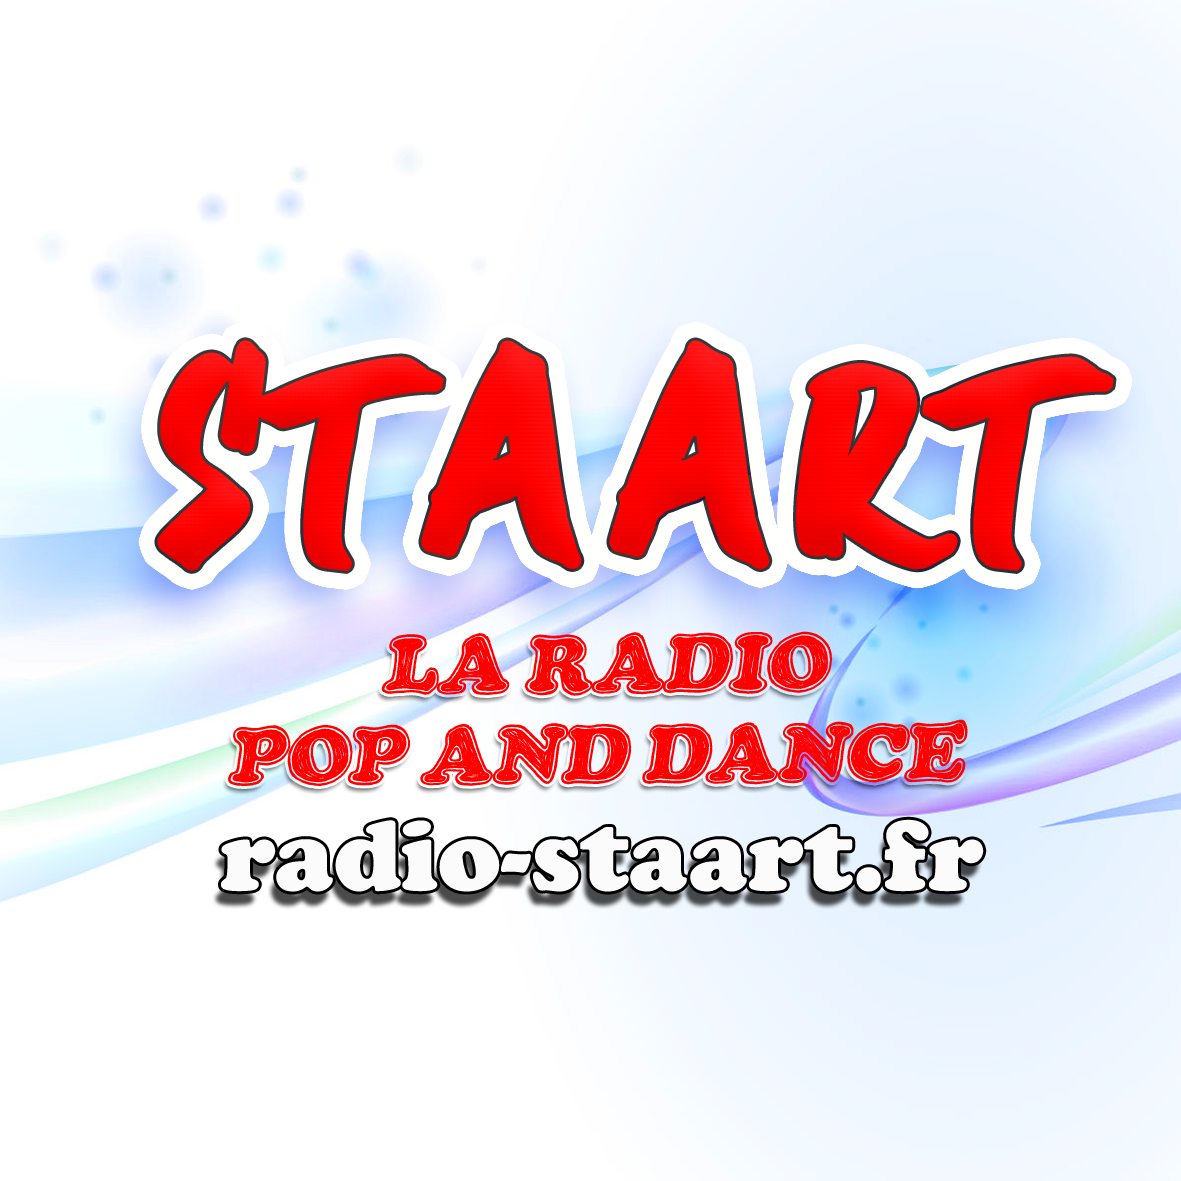 la radio Pop and Dance